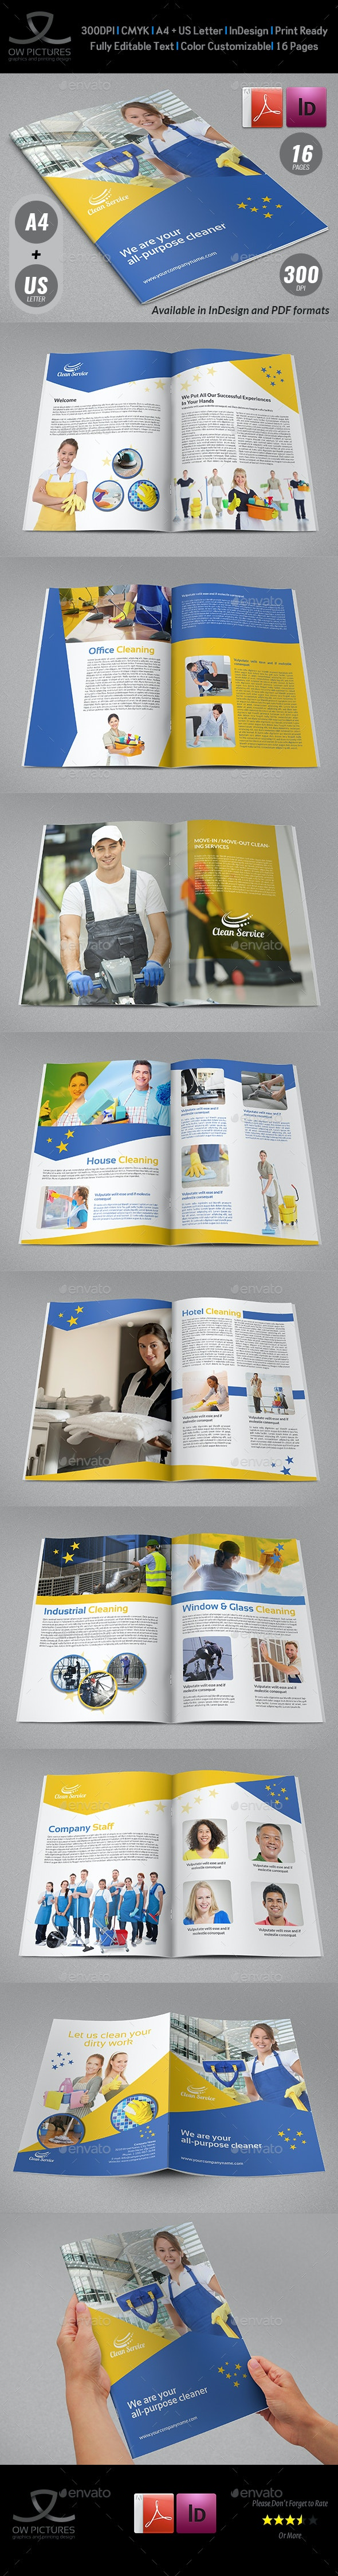 Cleaning Services Brochure Template - 16 Pages - Brochures Print Templates